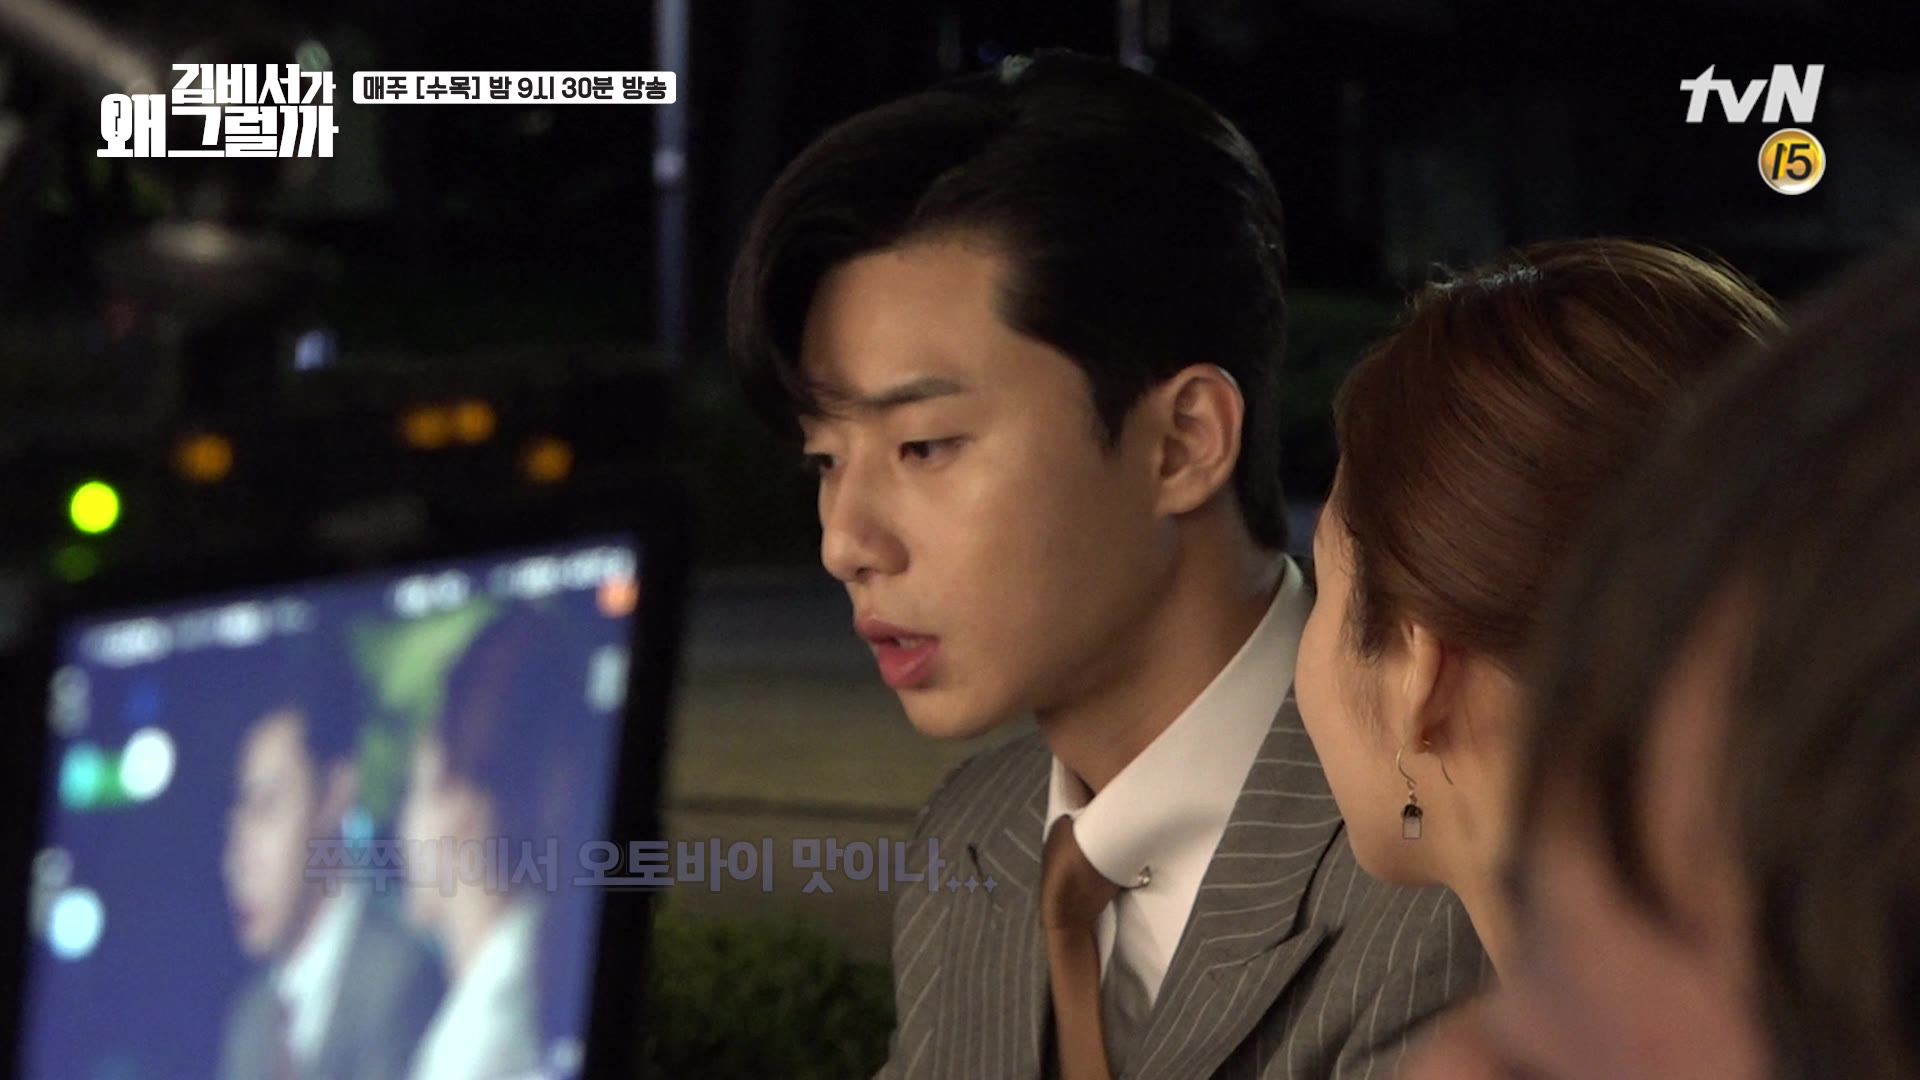 Behind the Scenes 14: Episode 11 Filming: What's Wrong With Secretary Kim